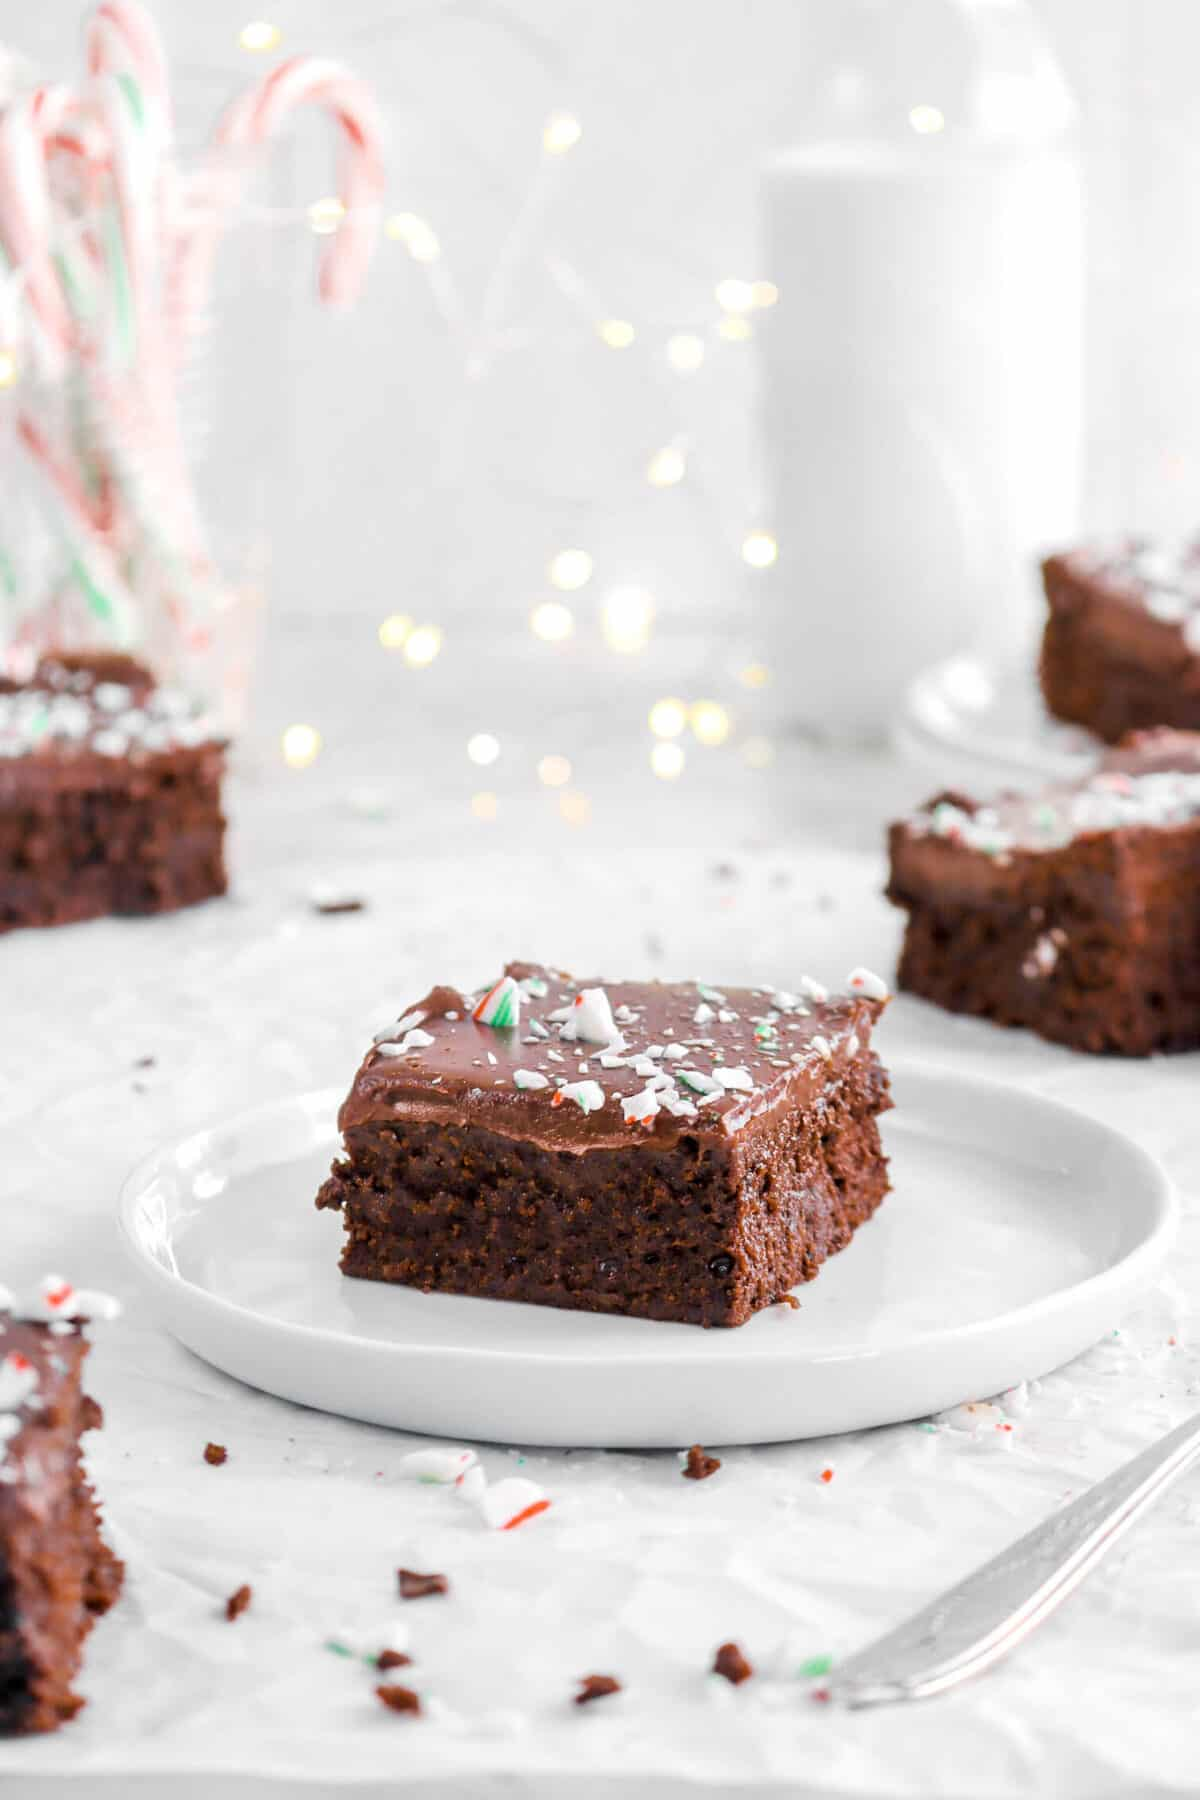 peppermint brownie on white plate with more brownies behind, fairy lights, and glass of milk